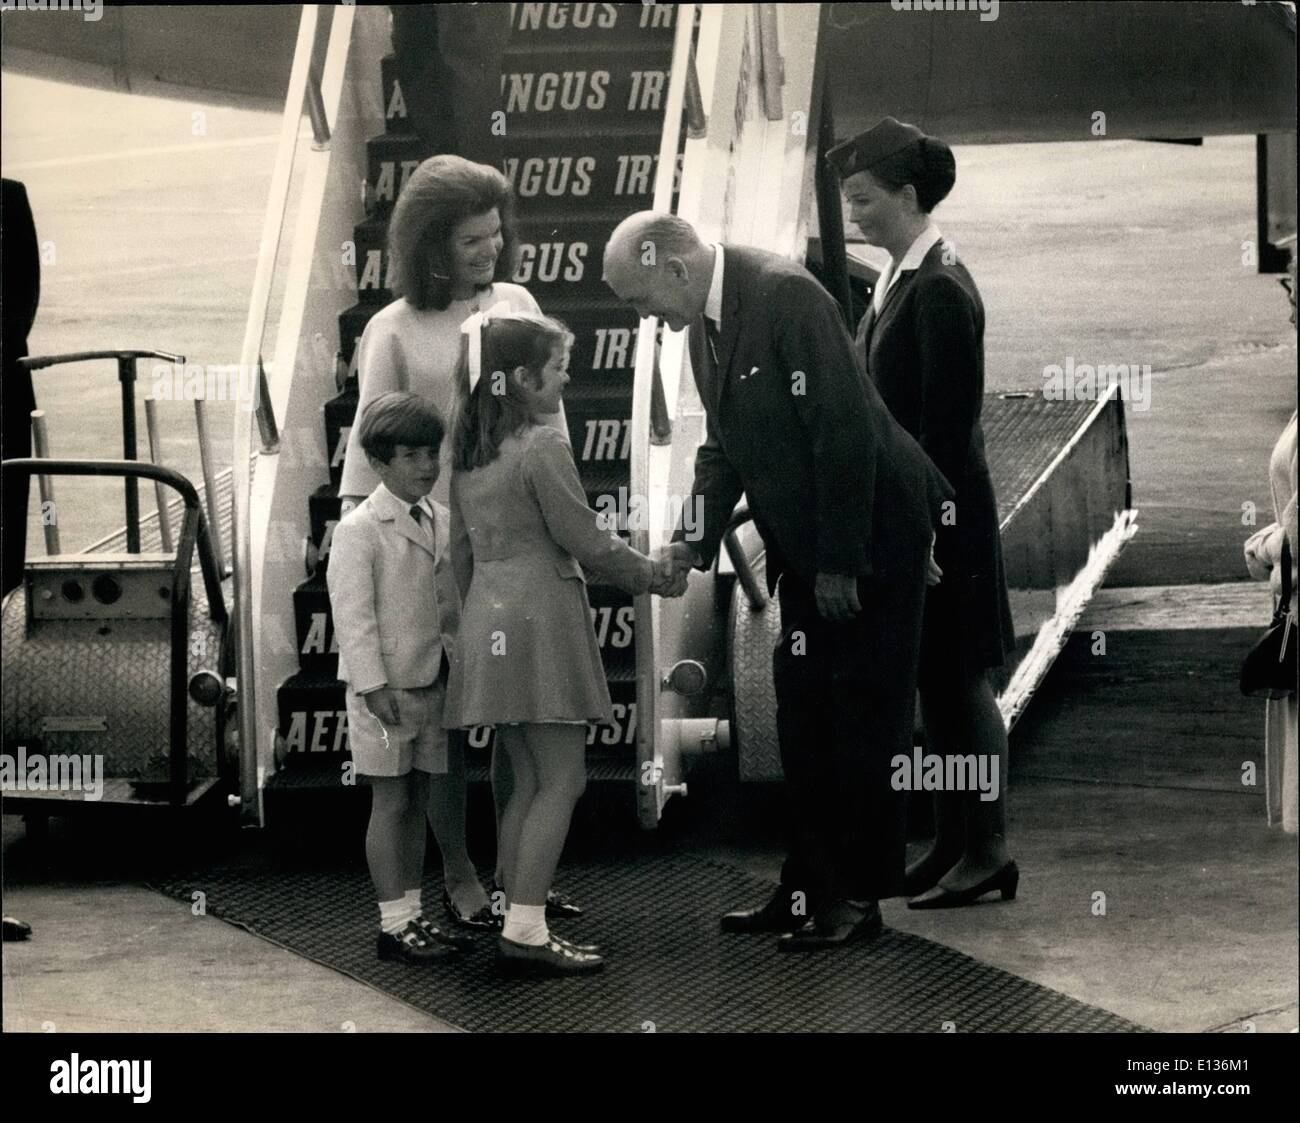 Feb. 28, 2012 - At the foot of the aircraft steps Caroline Kennedy is greeted by Mr Frank Aiken Minister for Irish External Affairs followed by John F. Kennedy junior and Jaqueline. - Stock Image